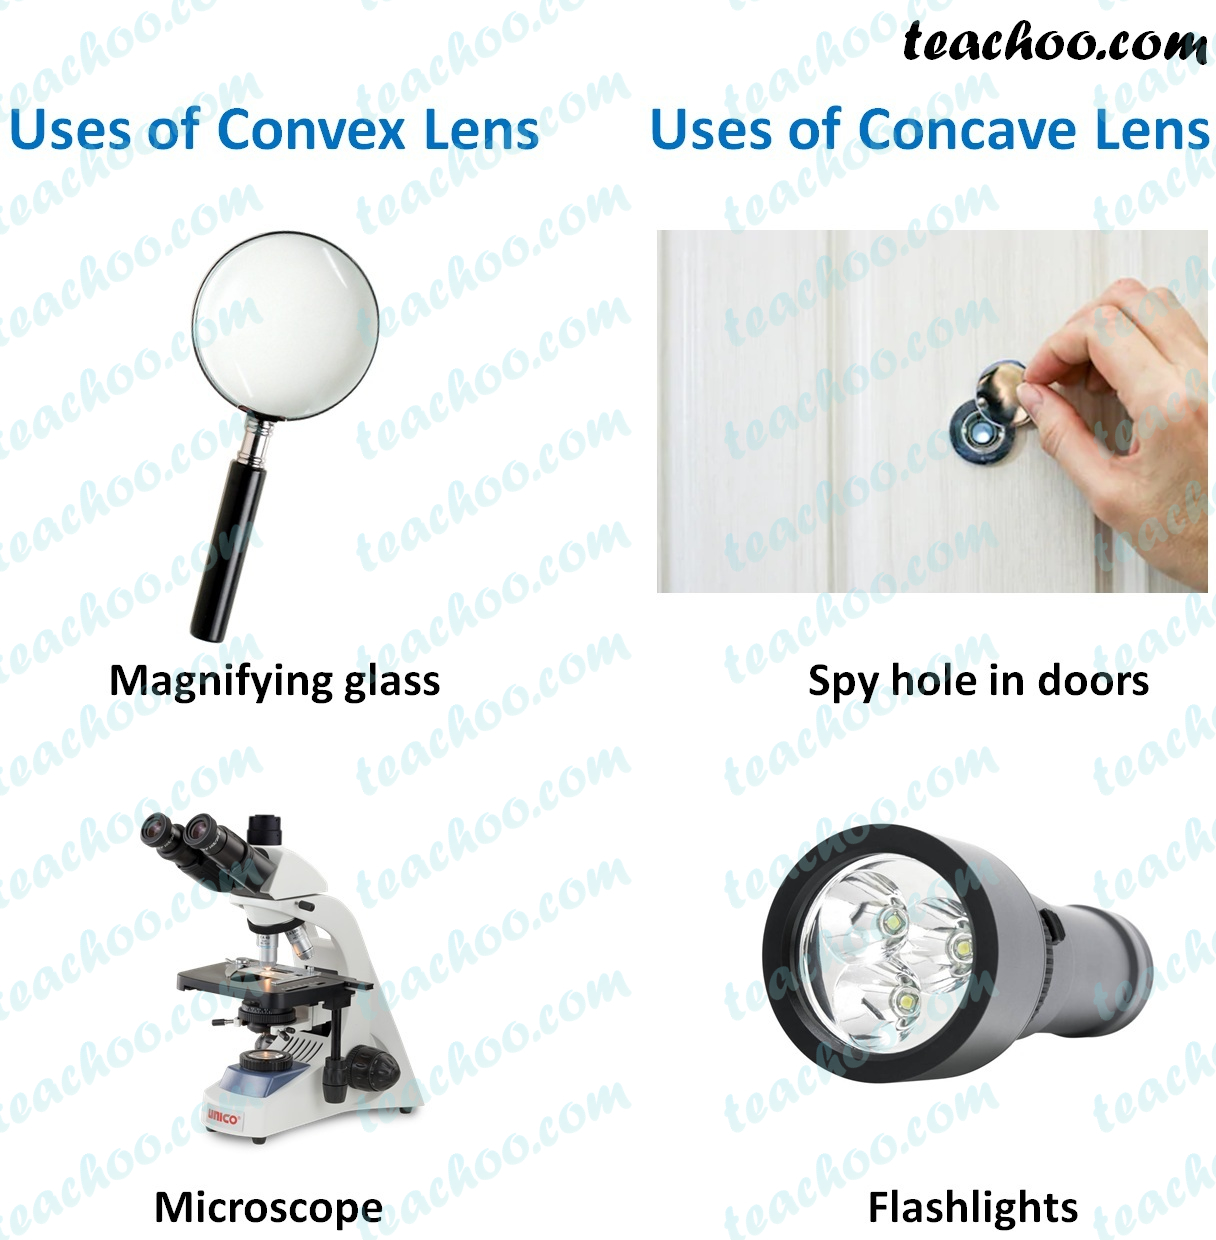 uses-of-convex-lens-and-concave-lens (1).jpg